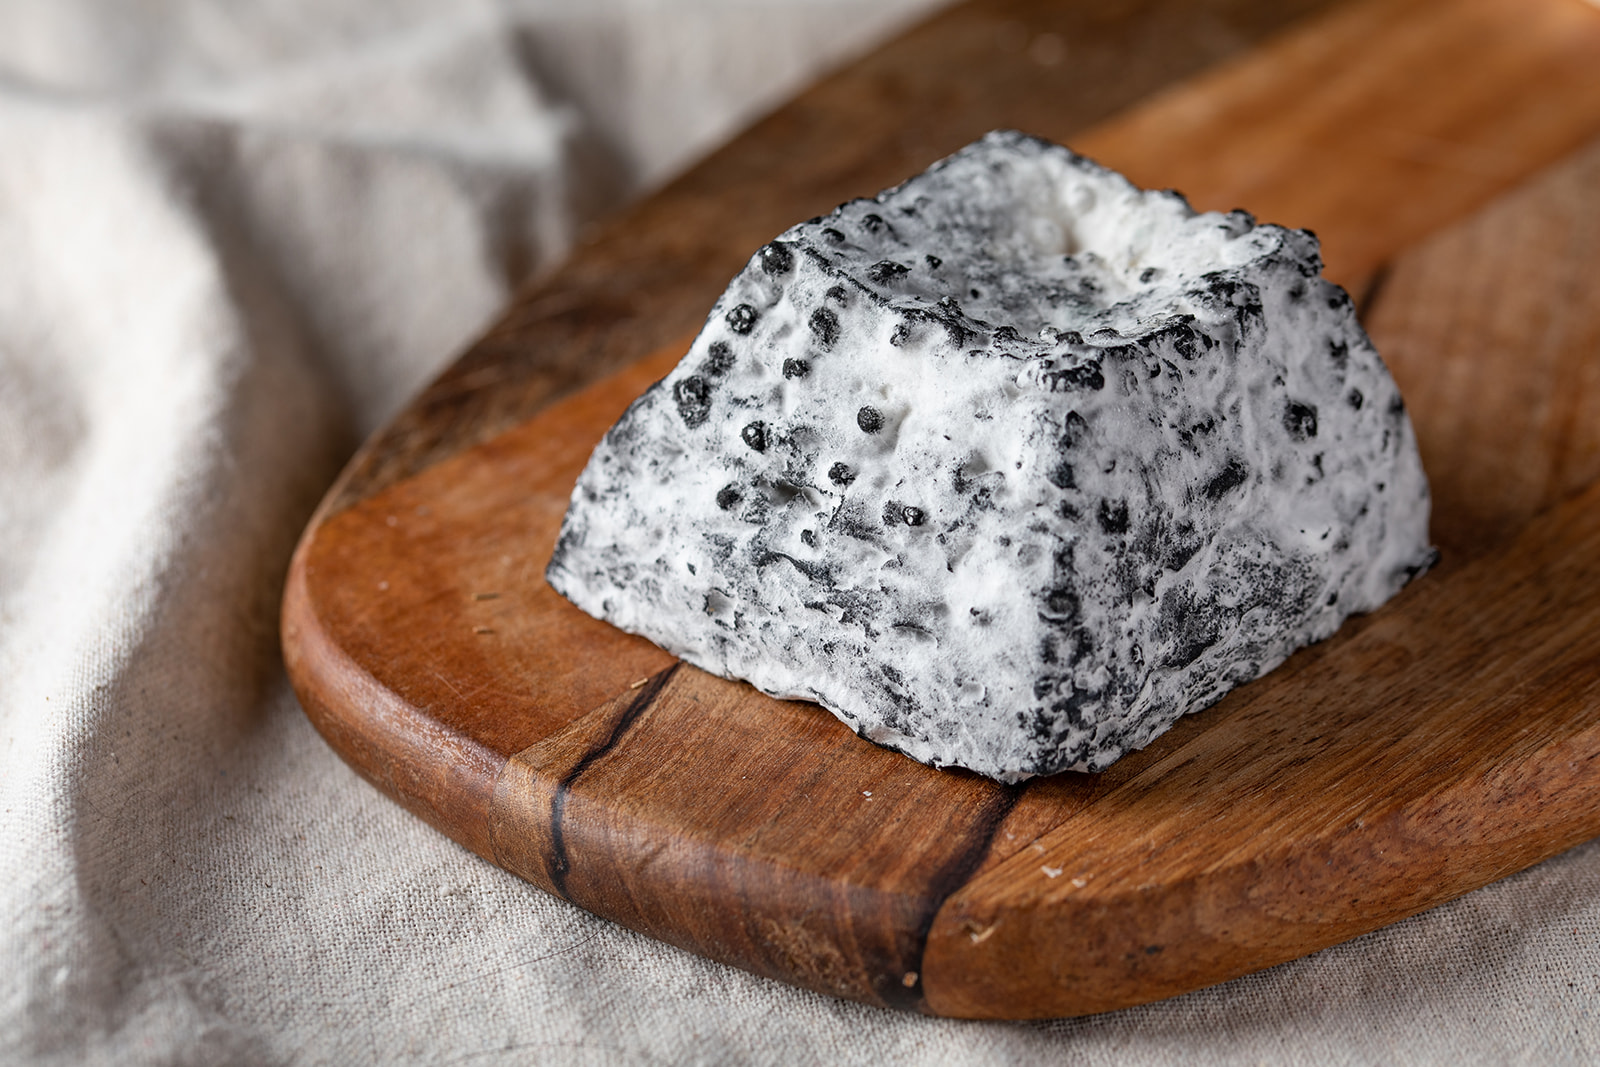 Ash-Pyramid Goat Cheese coated with Chestnut ash and white mold